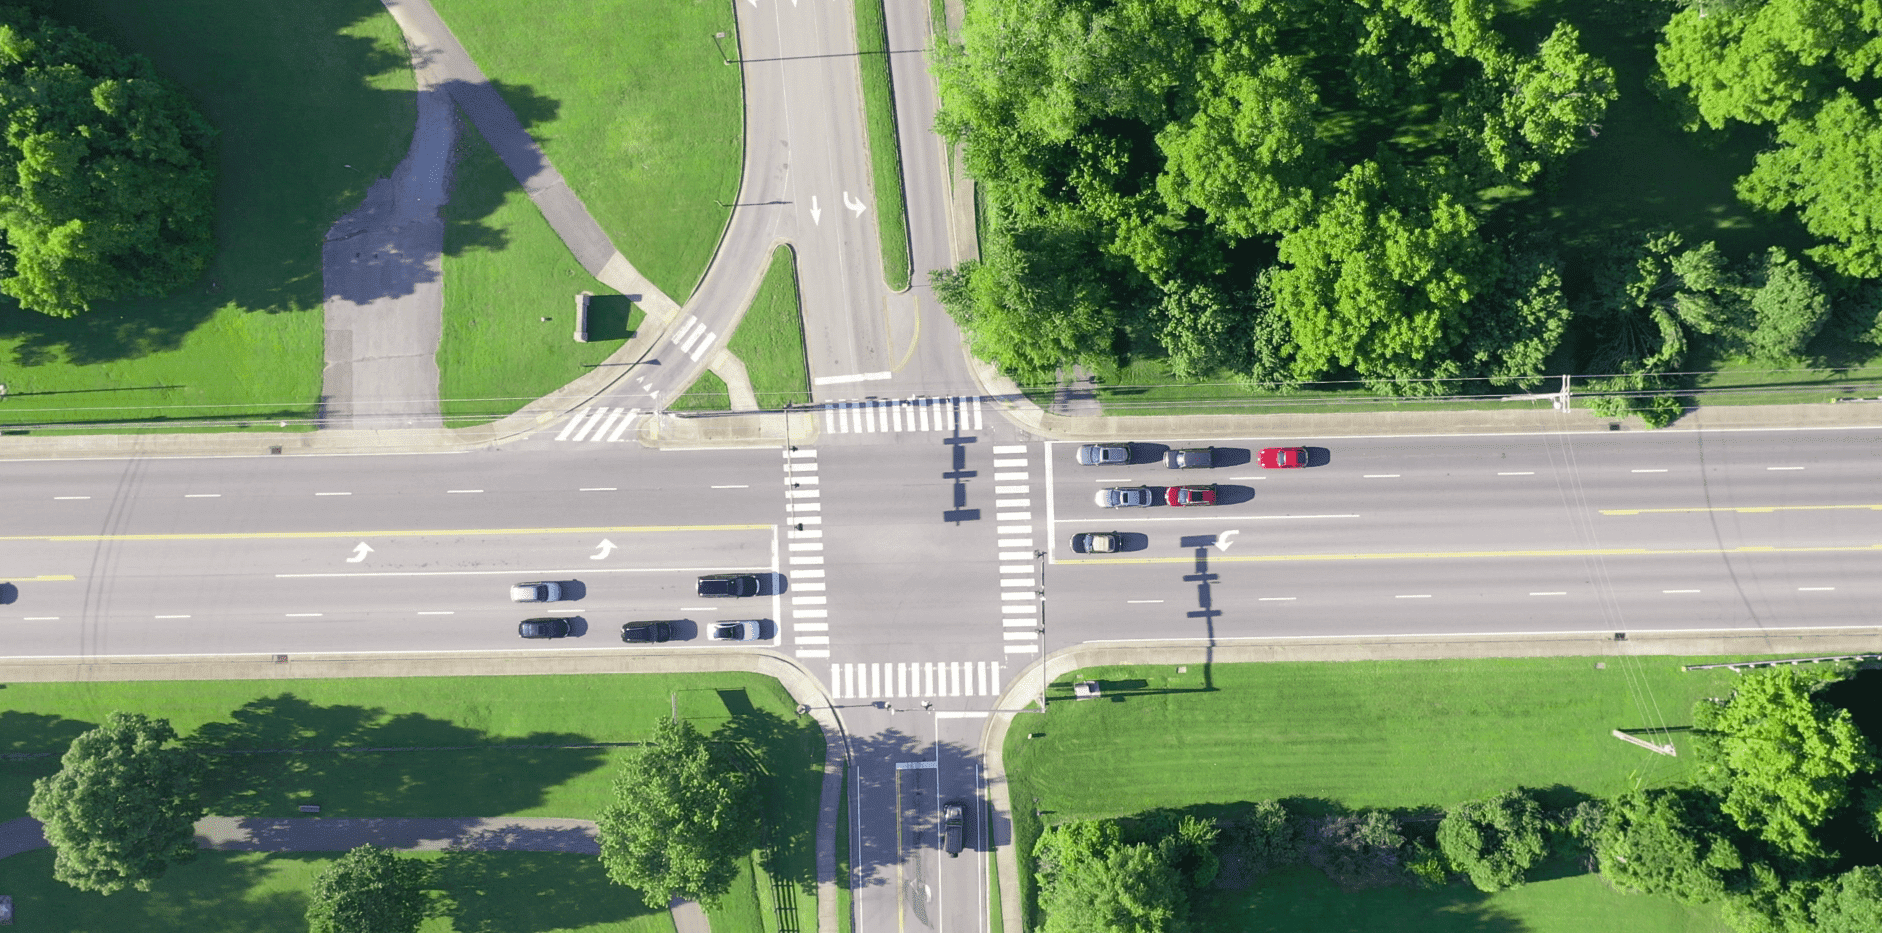 Drone Image - Intersection